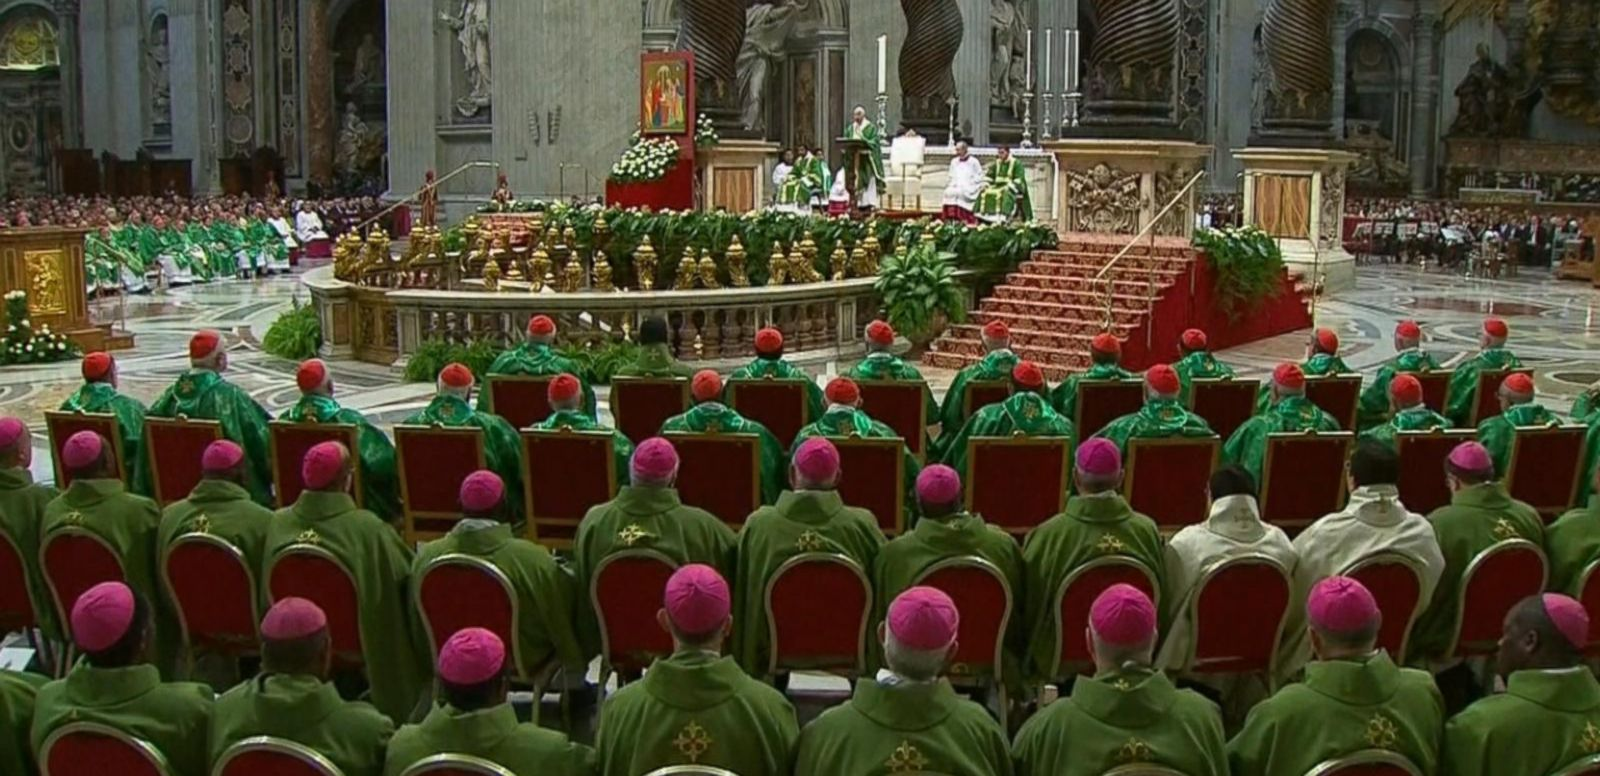 VIDEO: Marriage and Sexuality Front and Center Issues Discussed at the Vatican